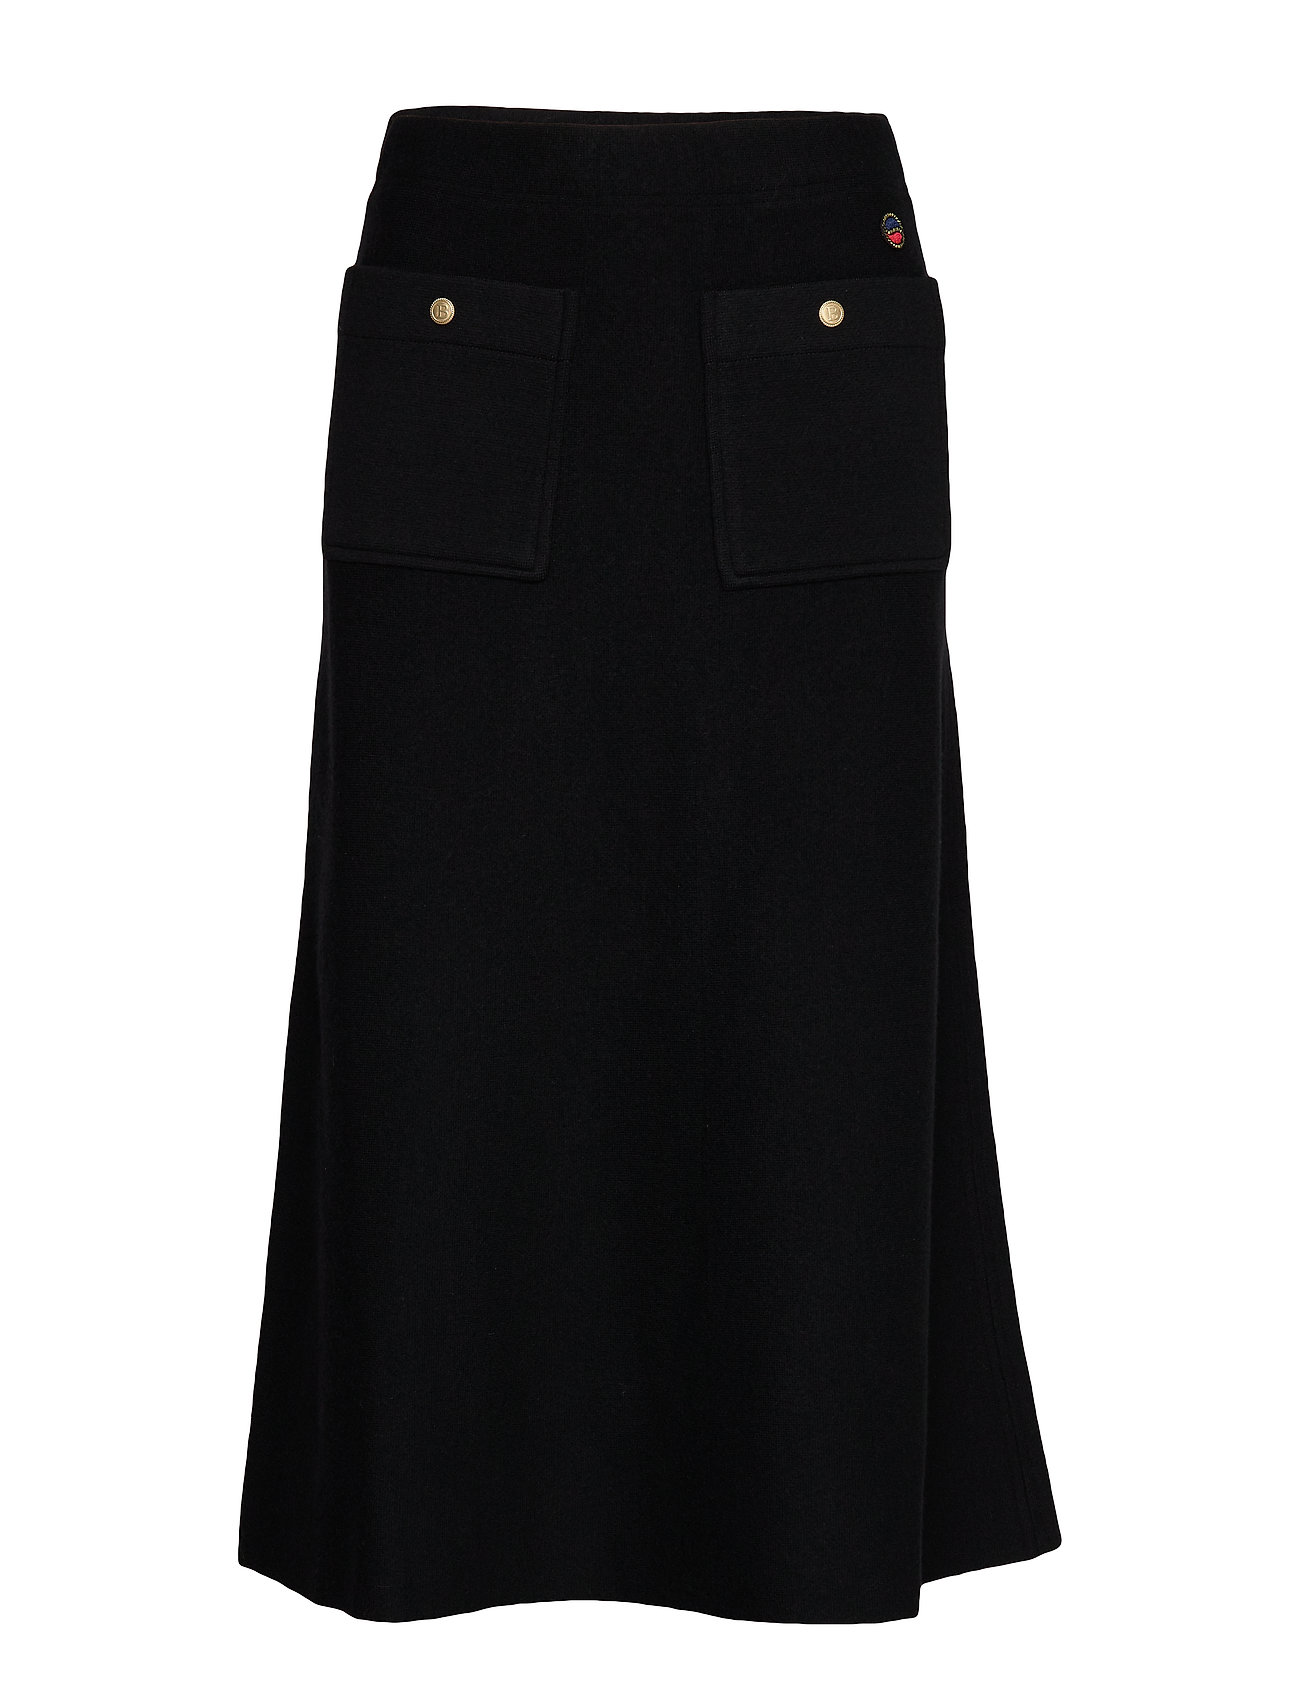 BUSNEL Salome skirt - BLACK